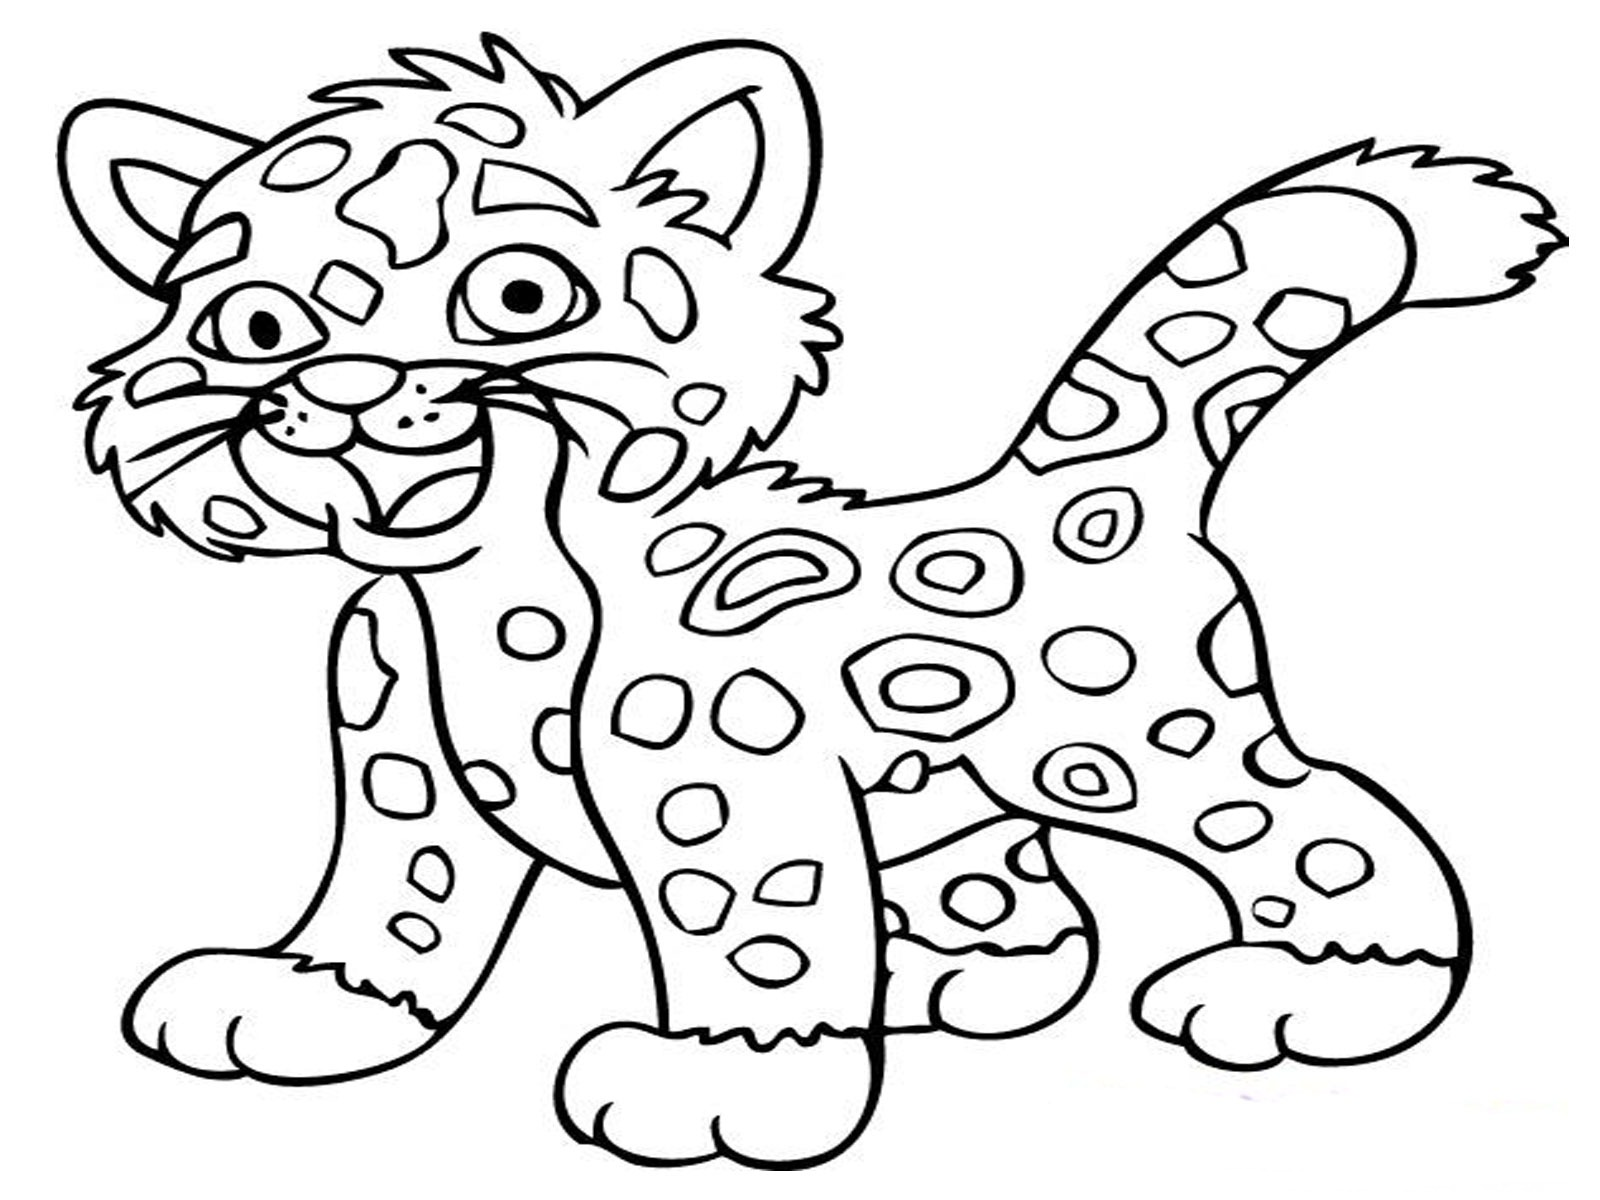 animals free printable coloring pages - photo#18